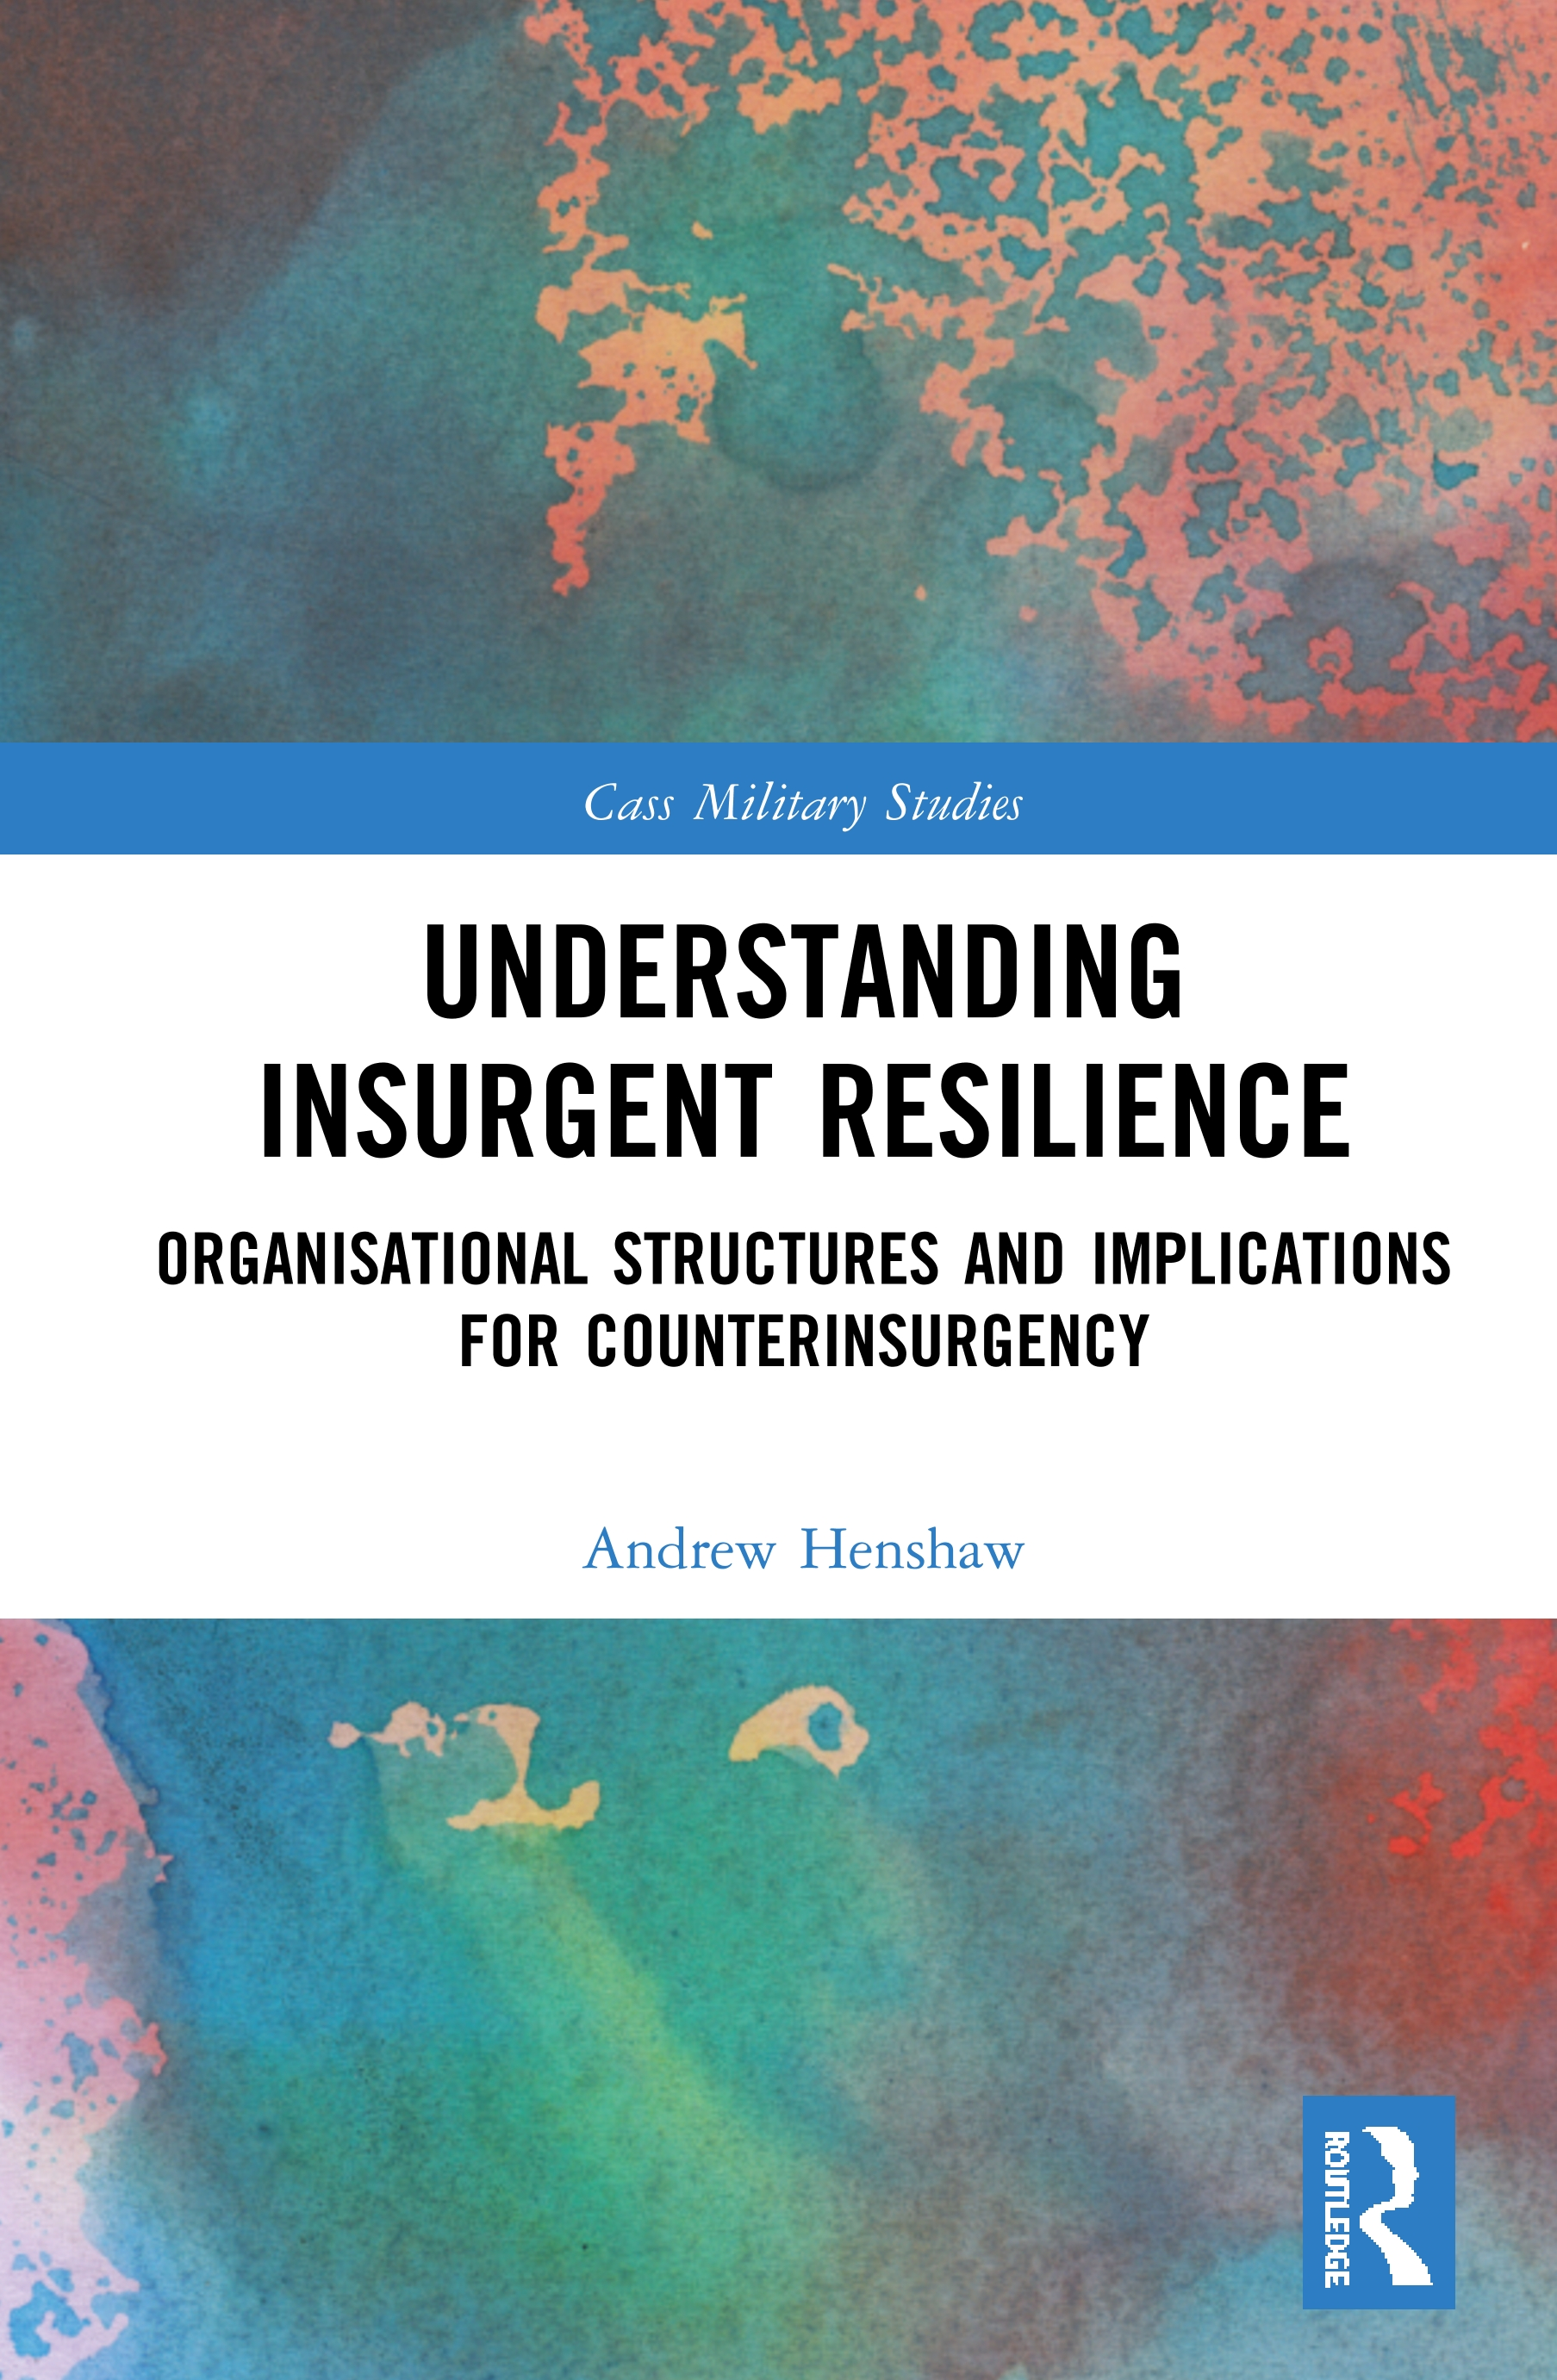 Understanding Insurgent Resilience: Organisational Structures and Implications for Counterinsurgency book cover